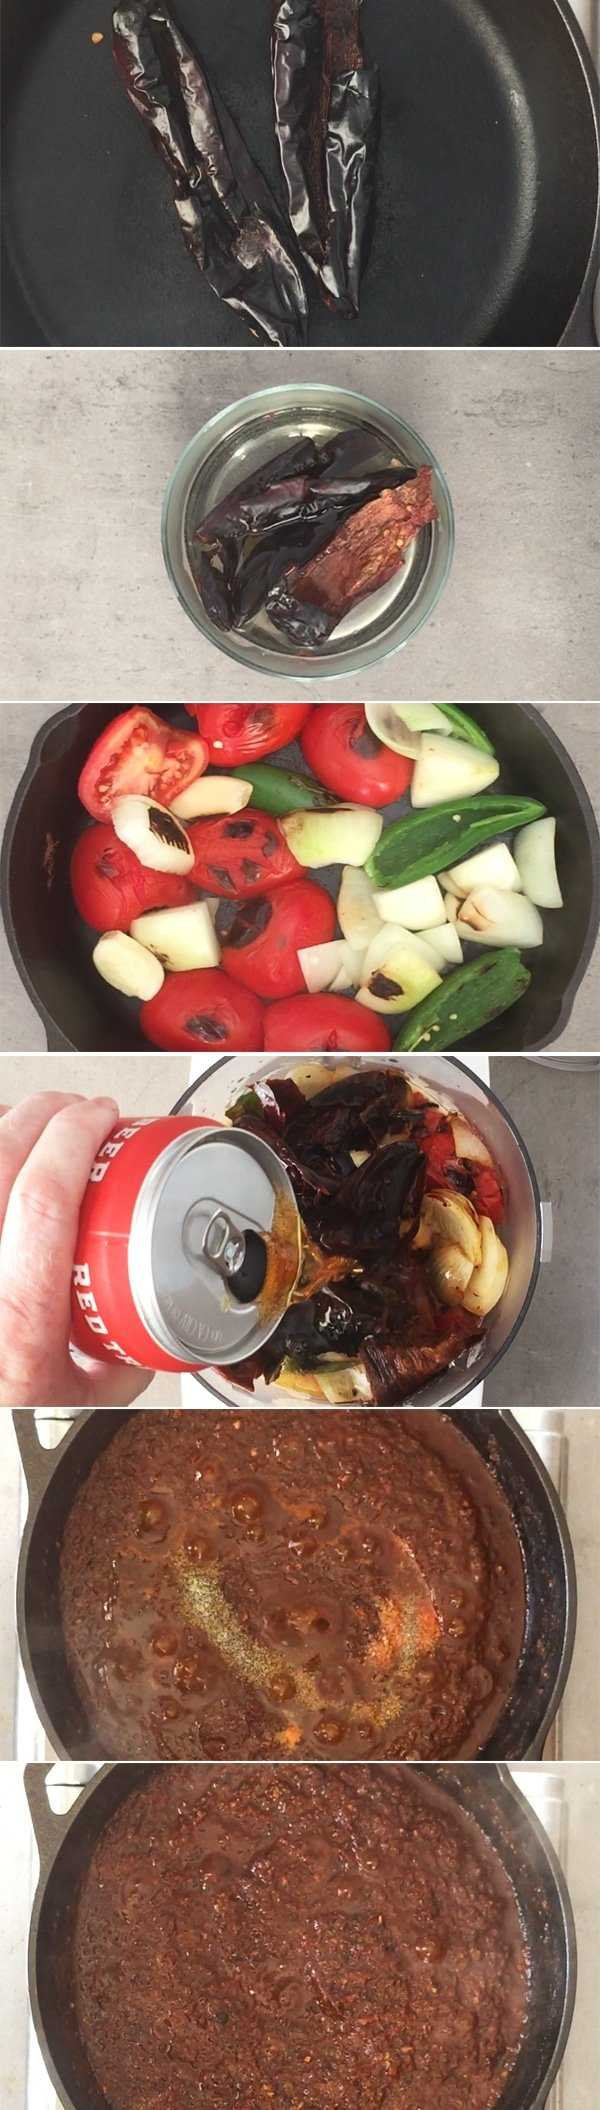 Step by step making salsa borracha with Mexican lager